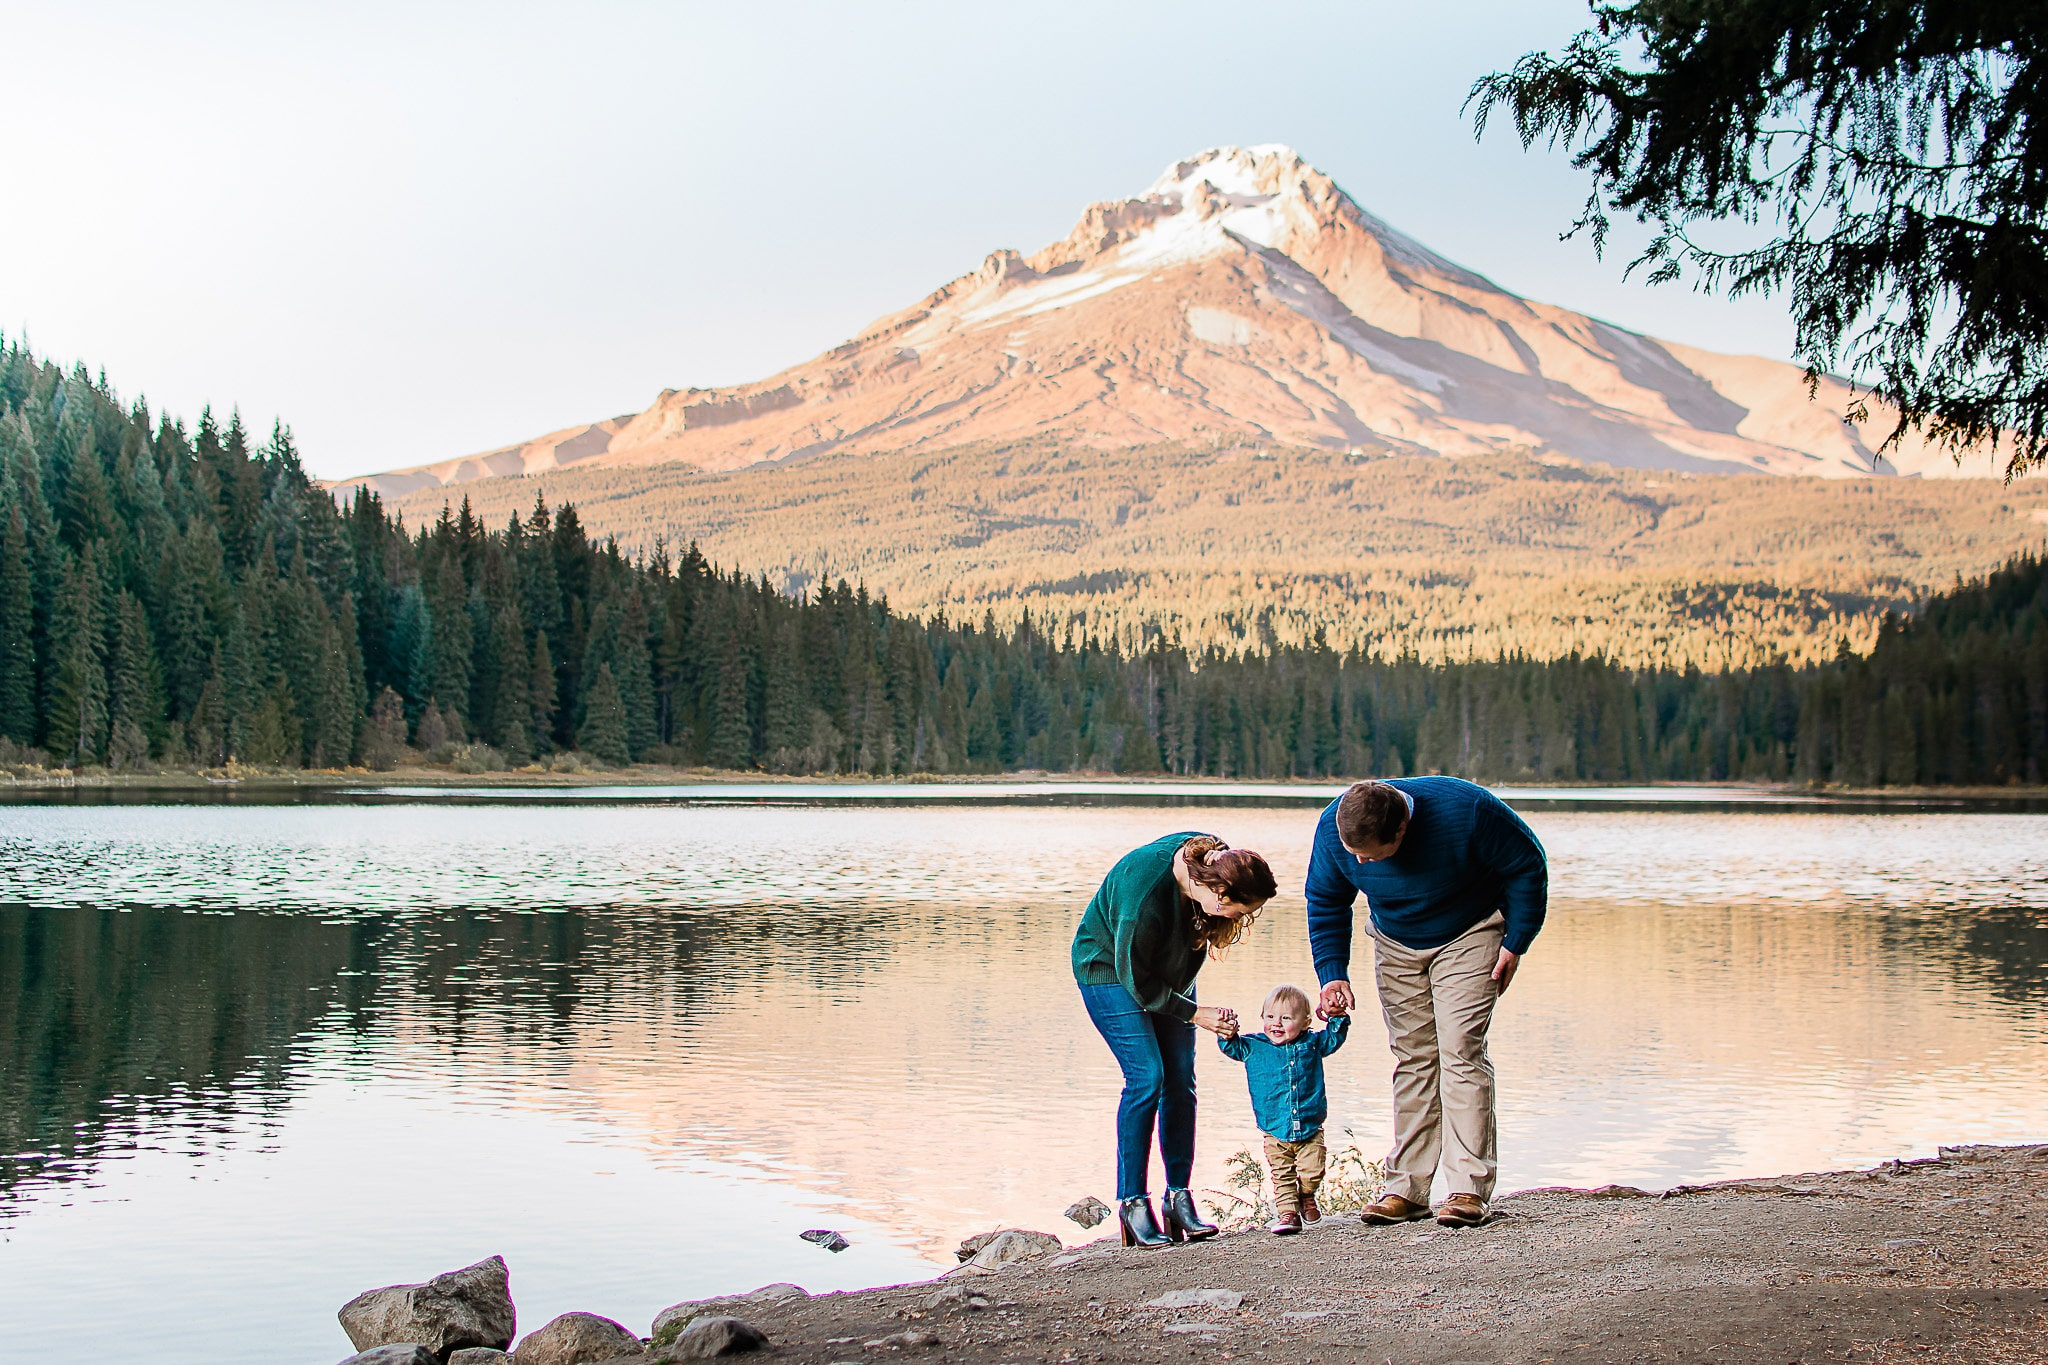 Family photography session at Trillium Lake, Mt Hood Oregon